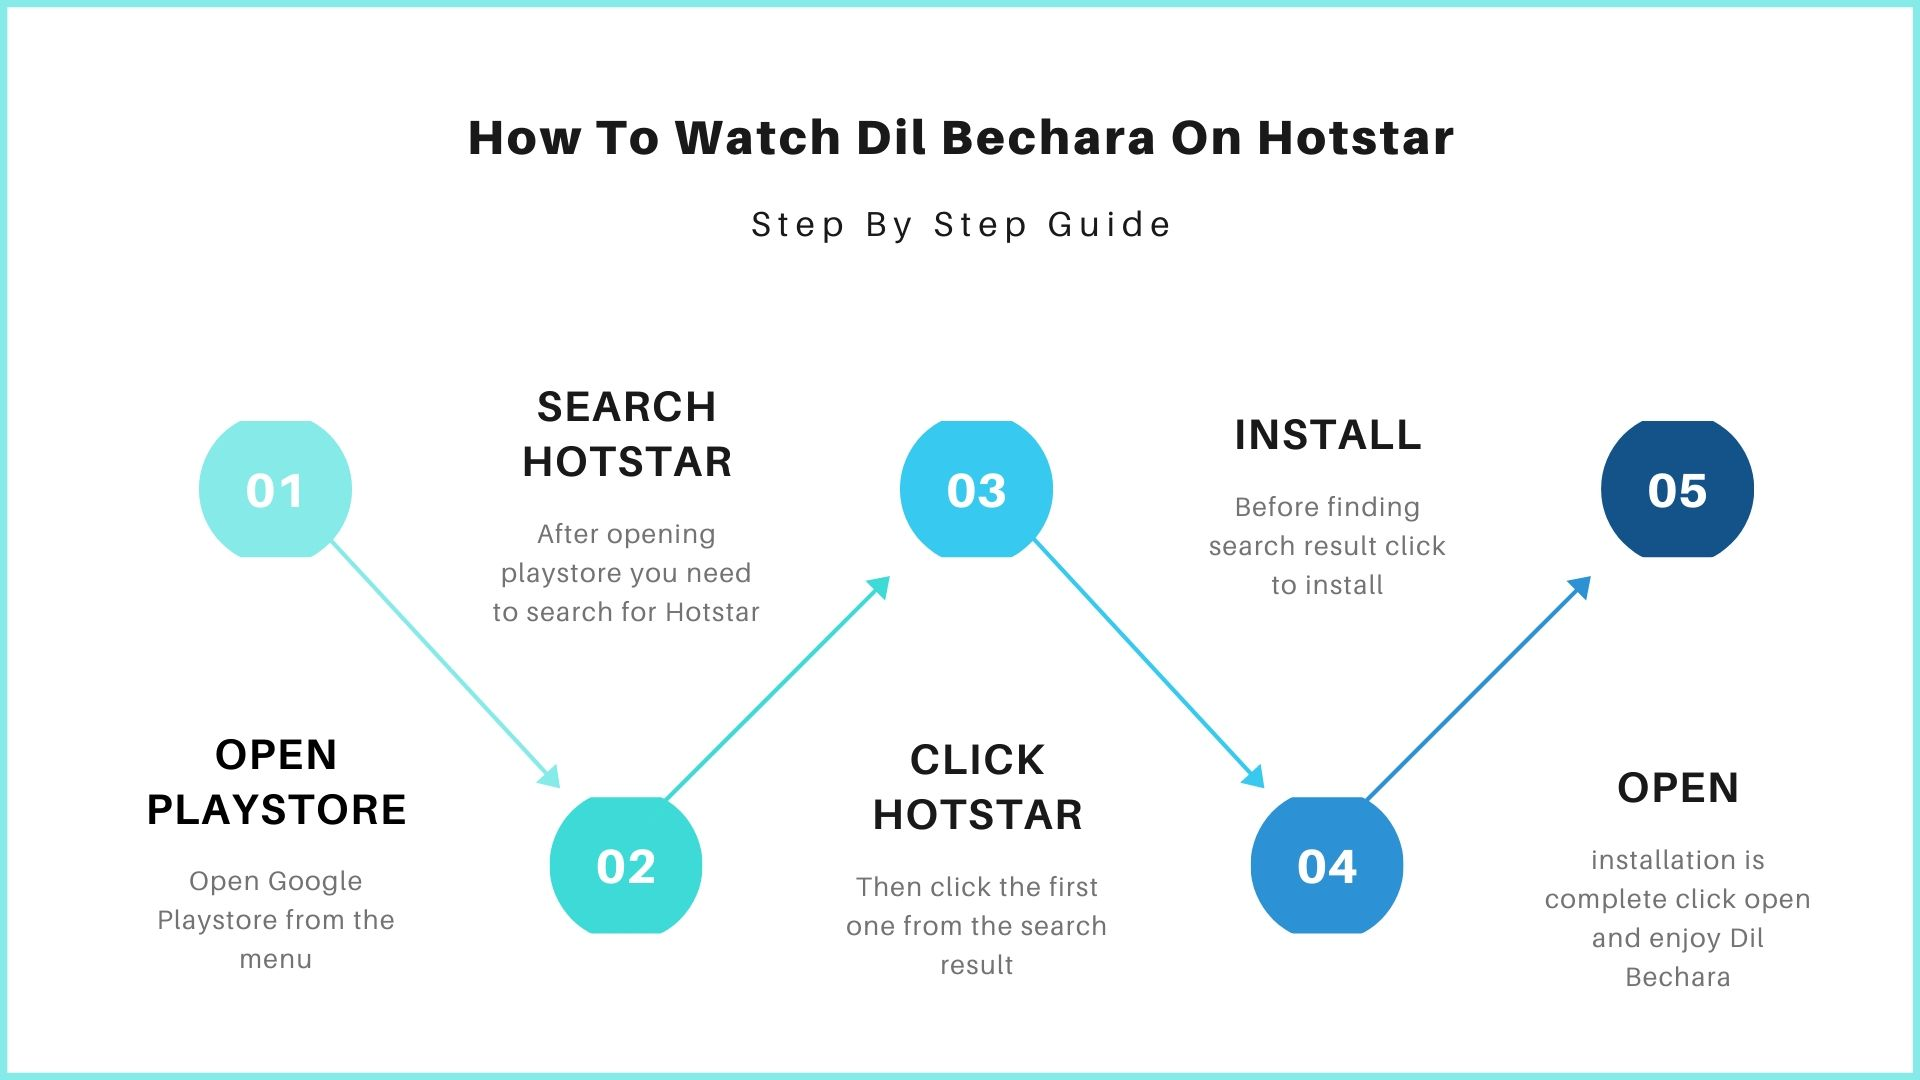 How To Watch Dil Bechara On Hotstar